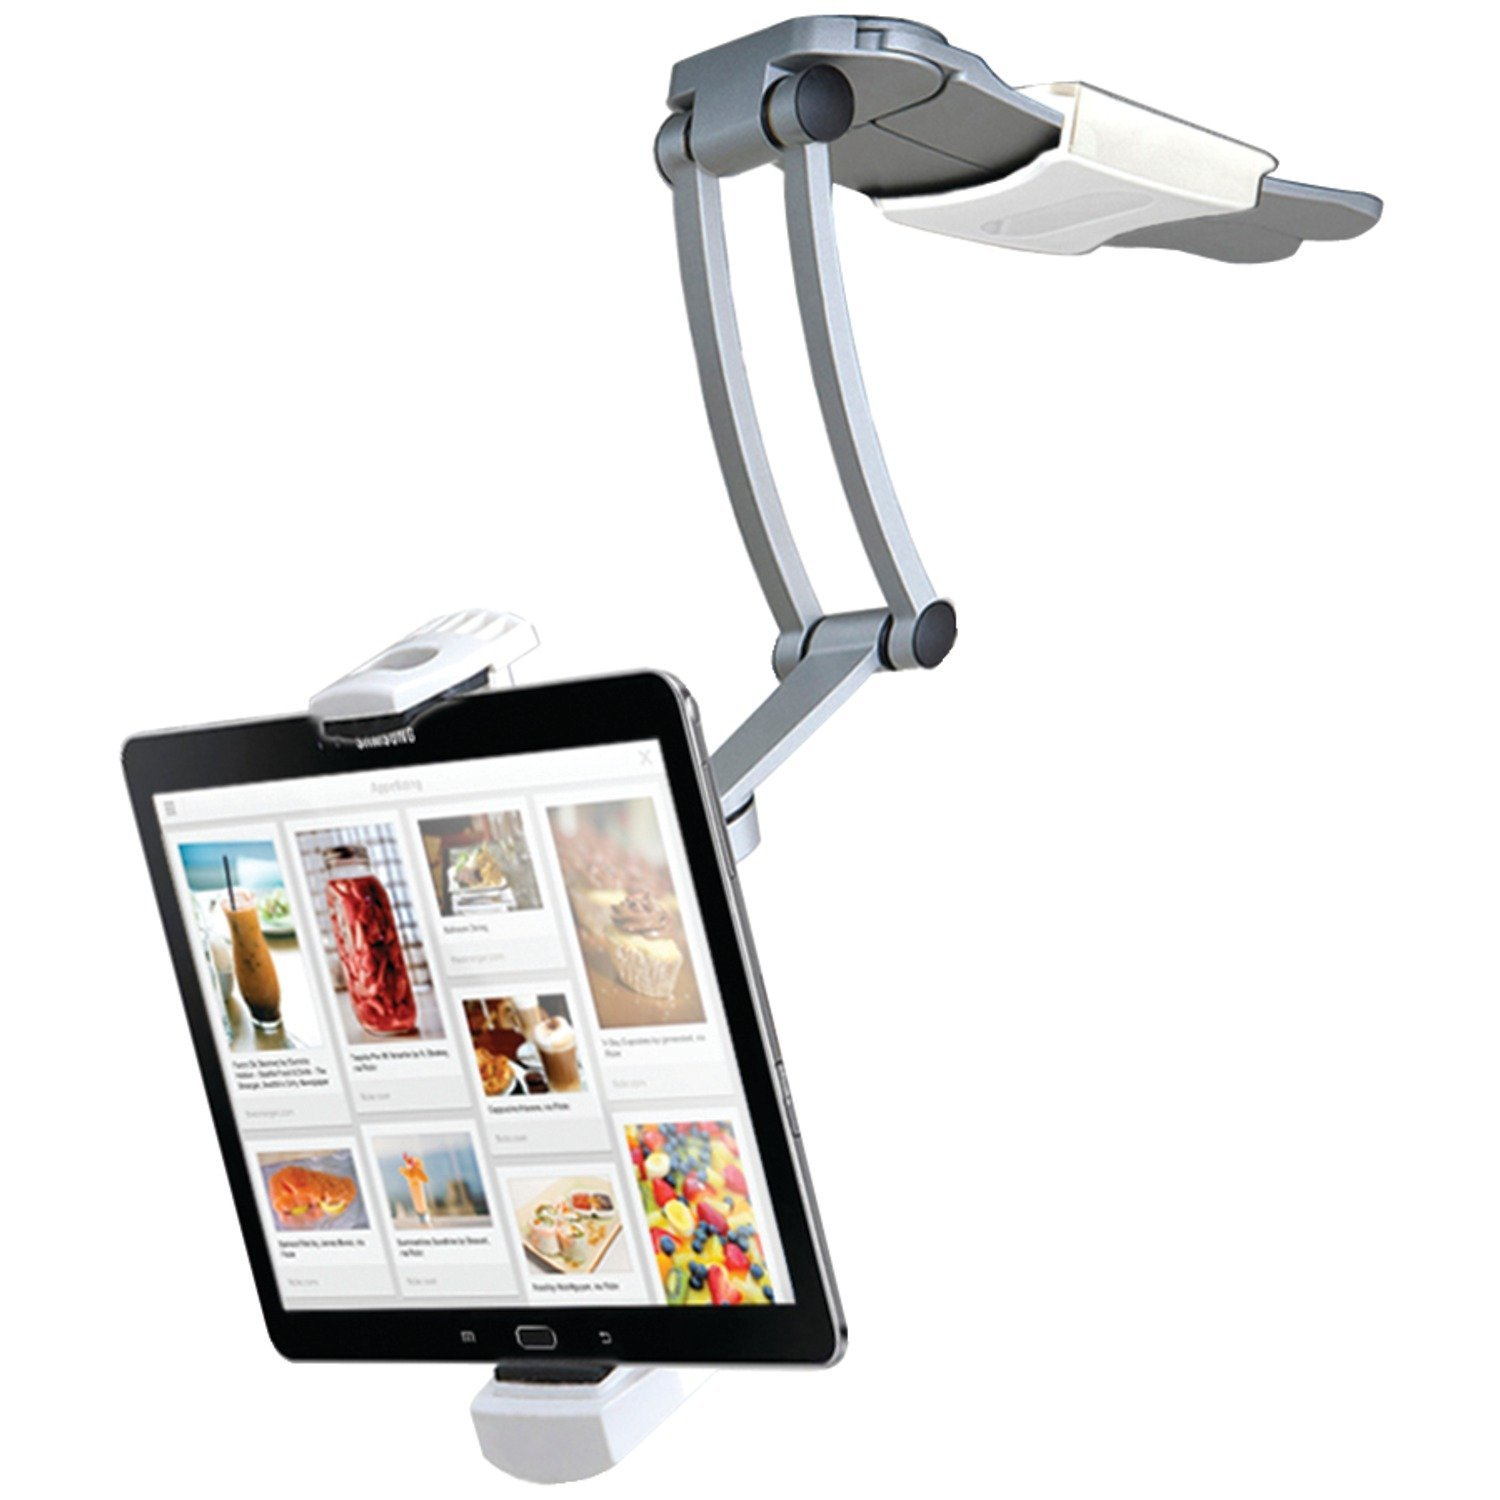 Details about CTA Digital 2-In-1 Kitchen Mount Stand for iPad Air/iPad mini  and All Tablets (P